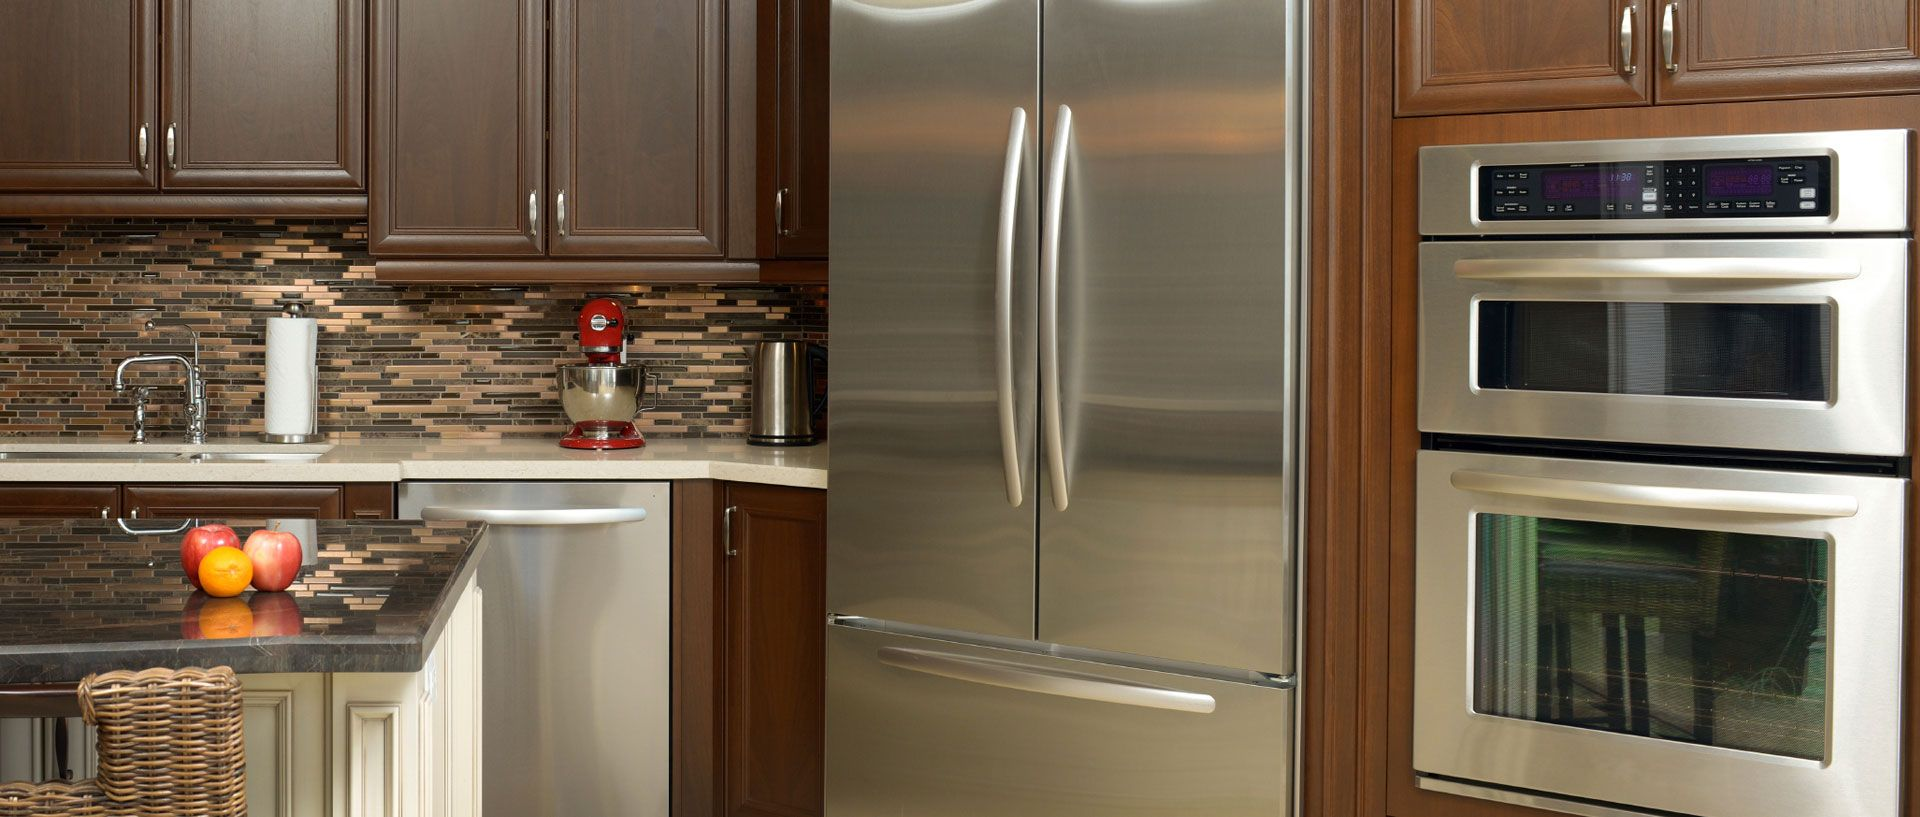 Is A Counter Depth Refrigerator Right For Your Kitchen? Find Out! | Counter  Depth Refrigerator, Counter Depth And Refrigerator